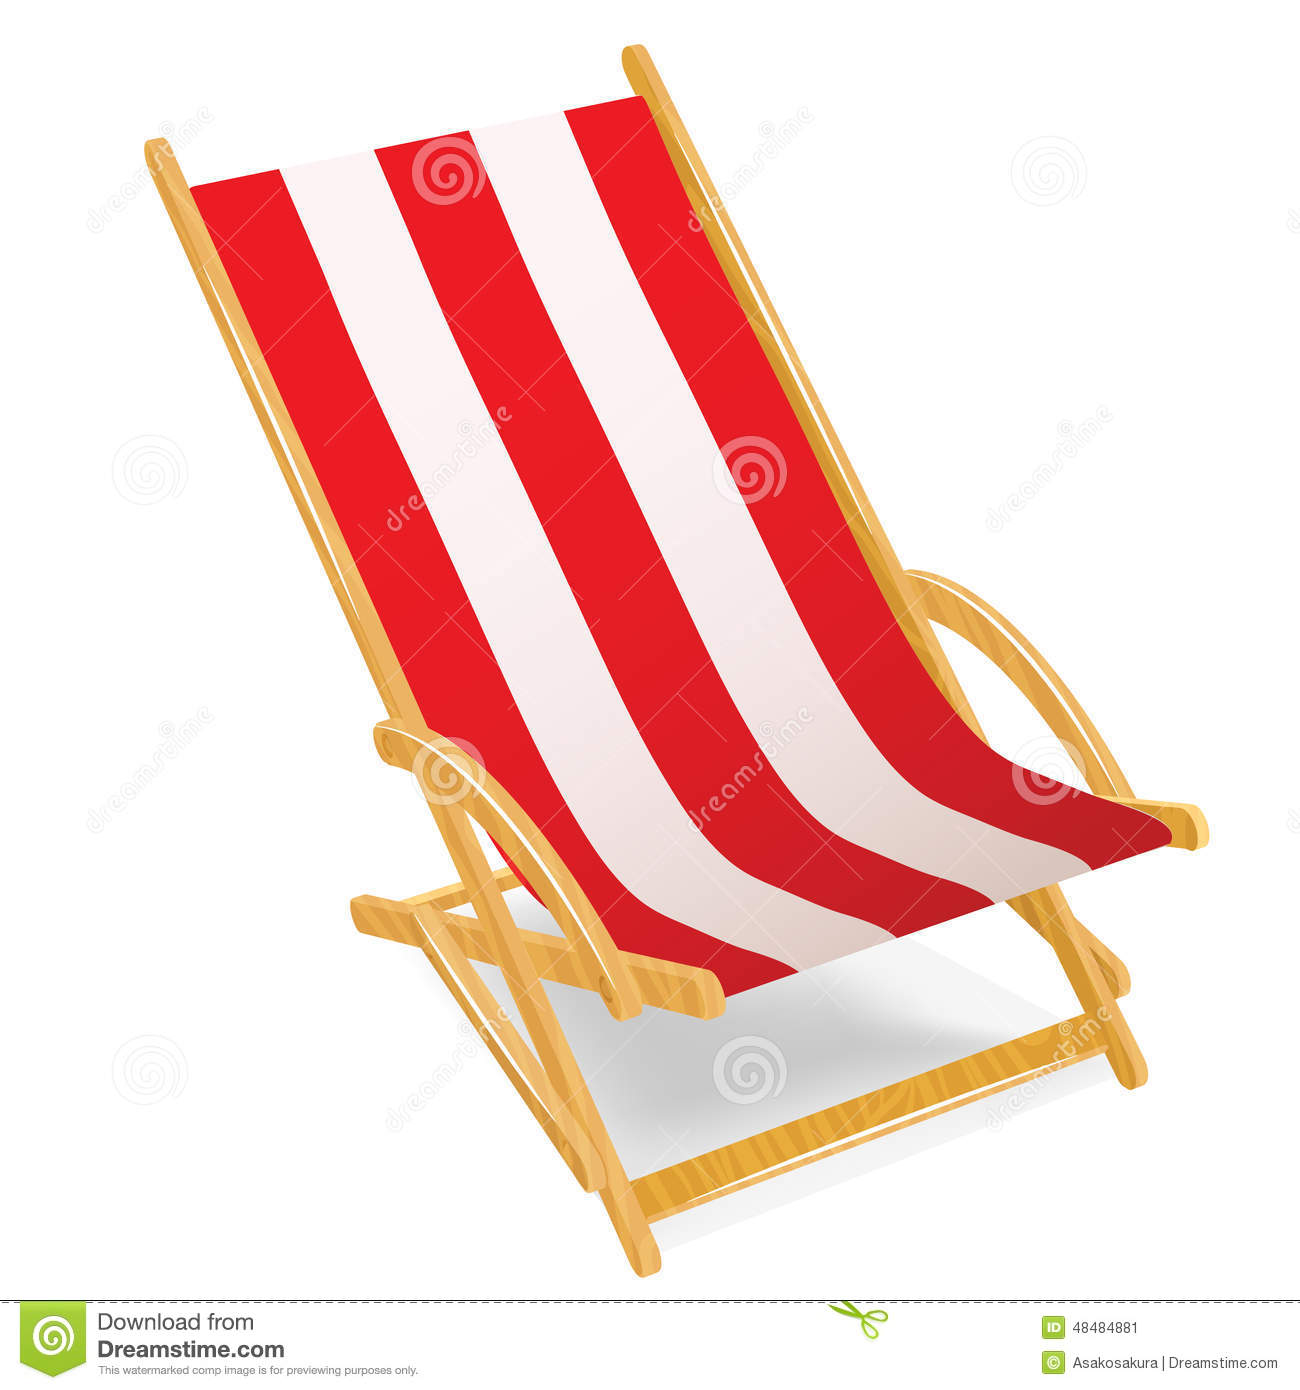 Wooden beach chaise longue isolated on white stock vector for Chaise longue de plage pliante